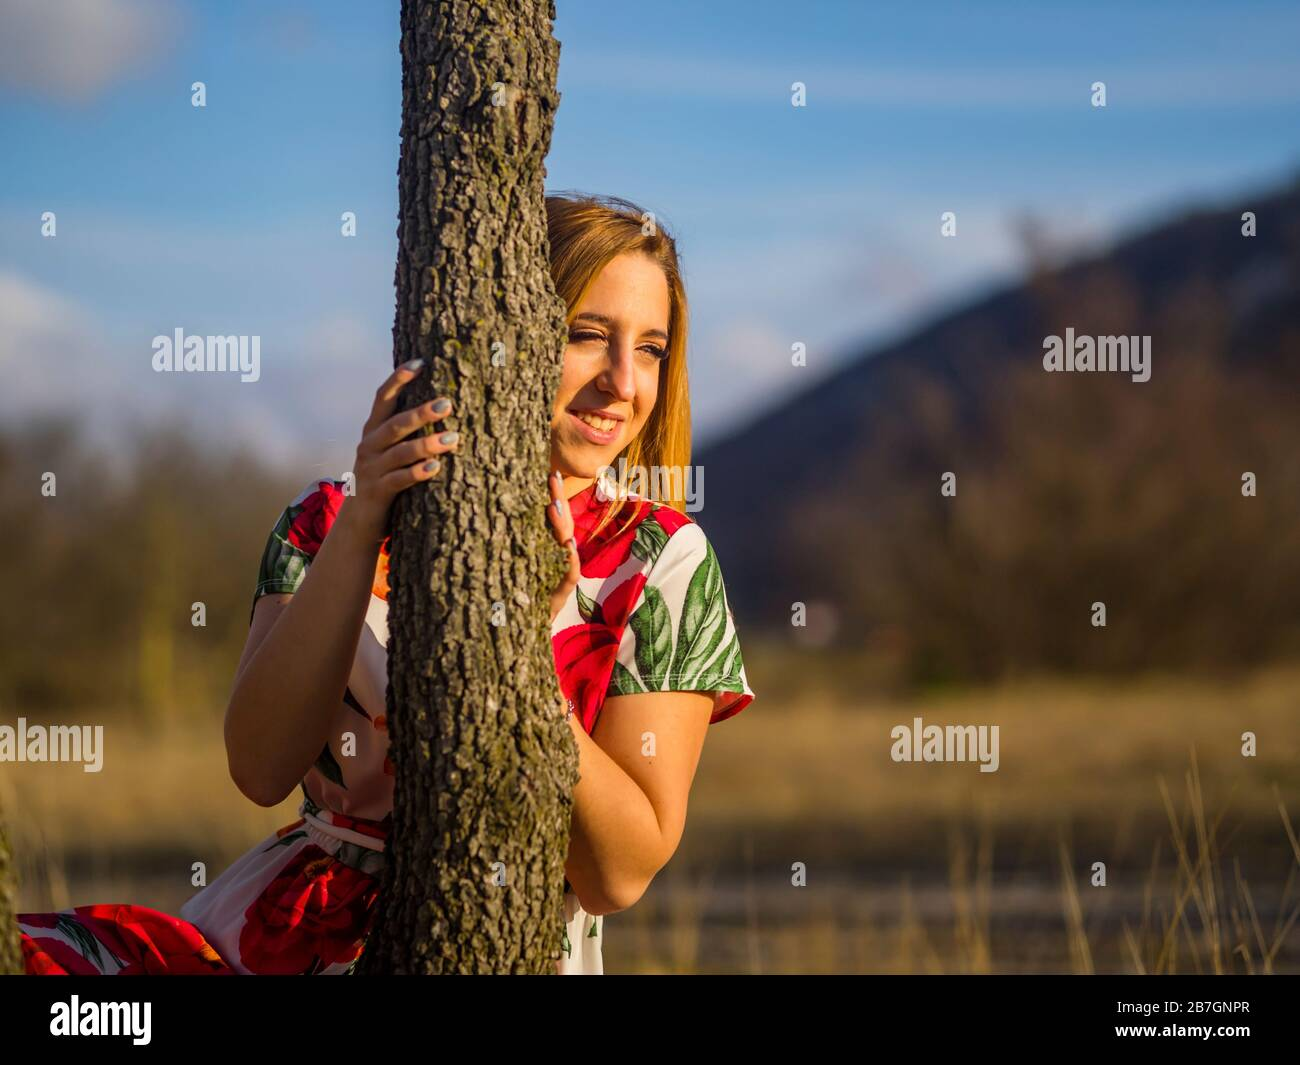 Sunset warm light sidelight sunshine sun-shine sunlight Green forest nature looking away portrait embracing embrace loving liking tree natureaddict Stock Photo